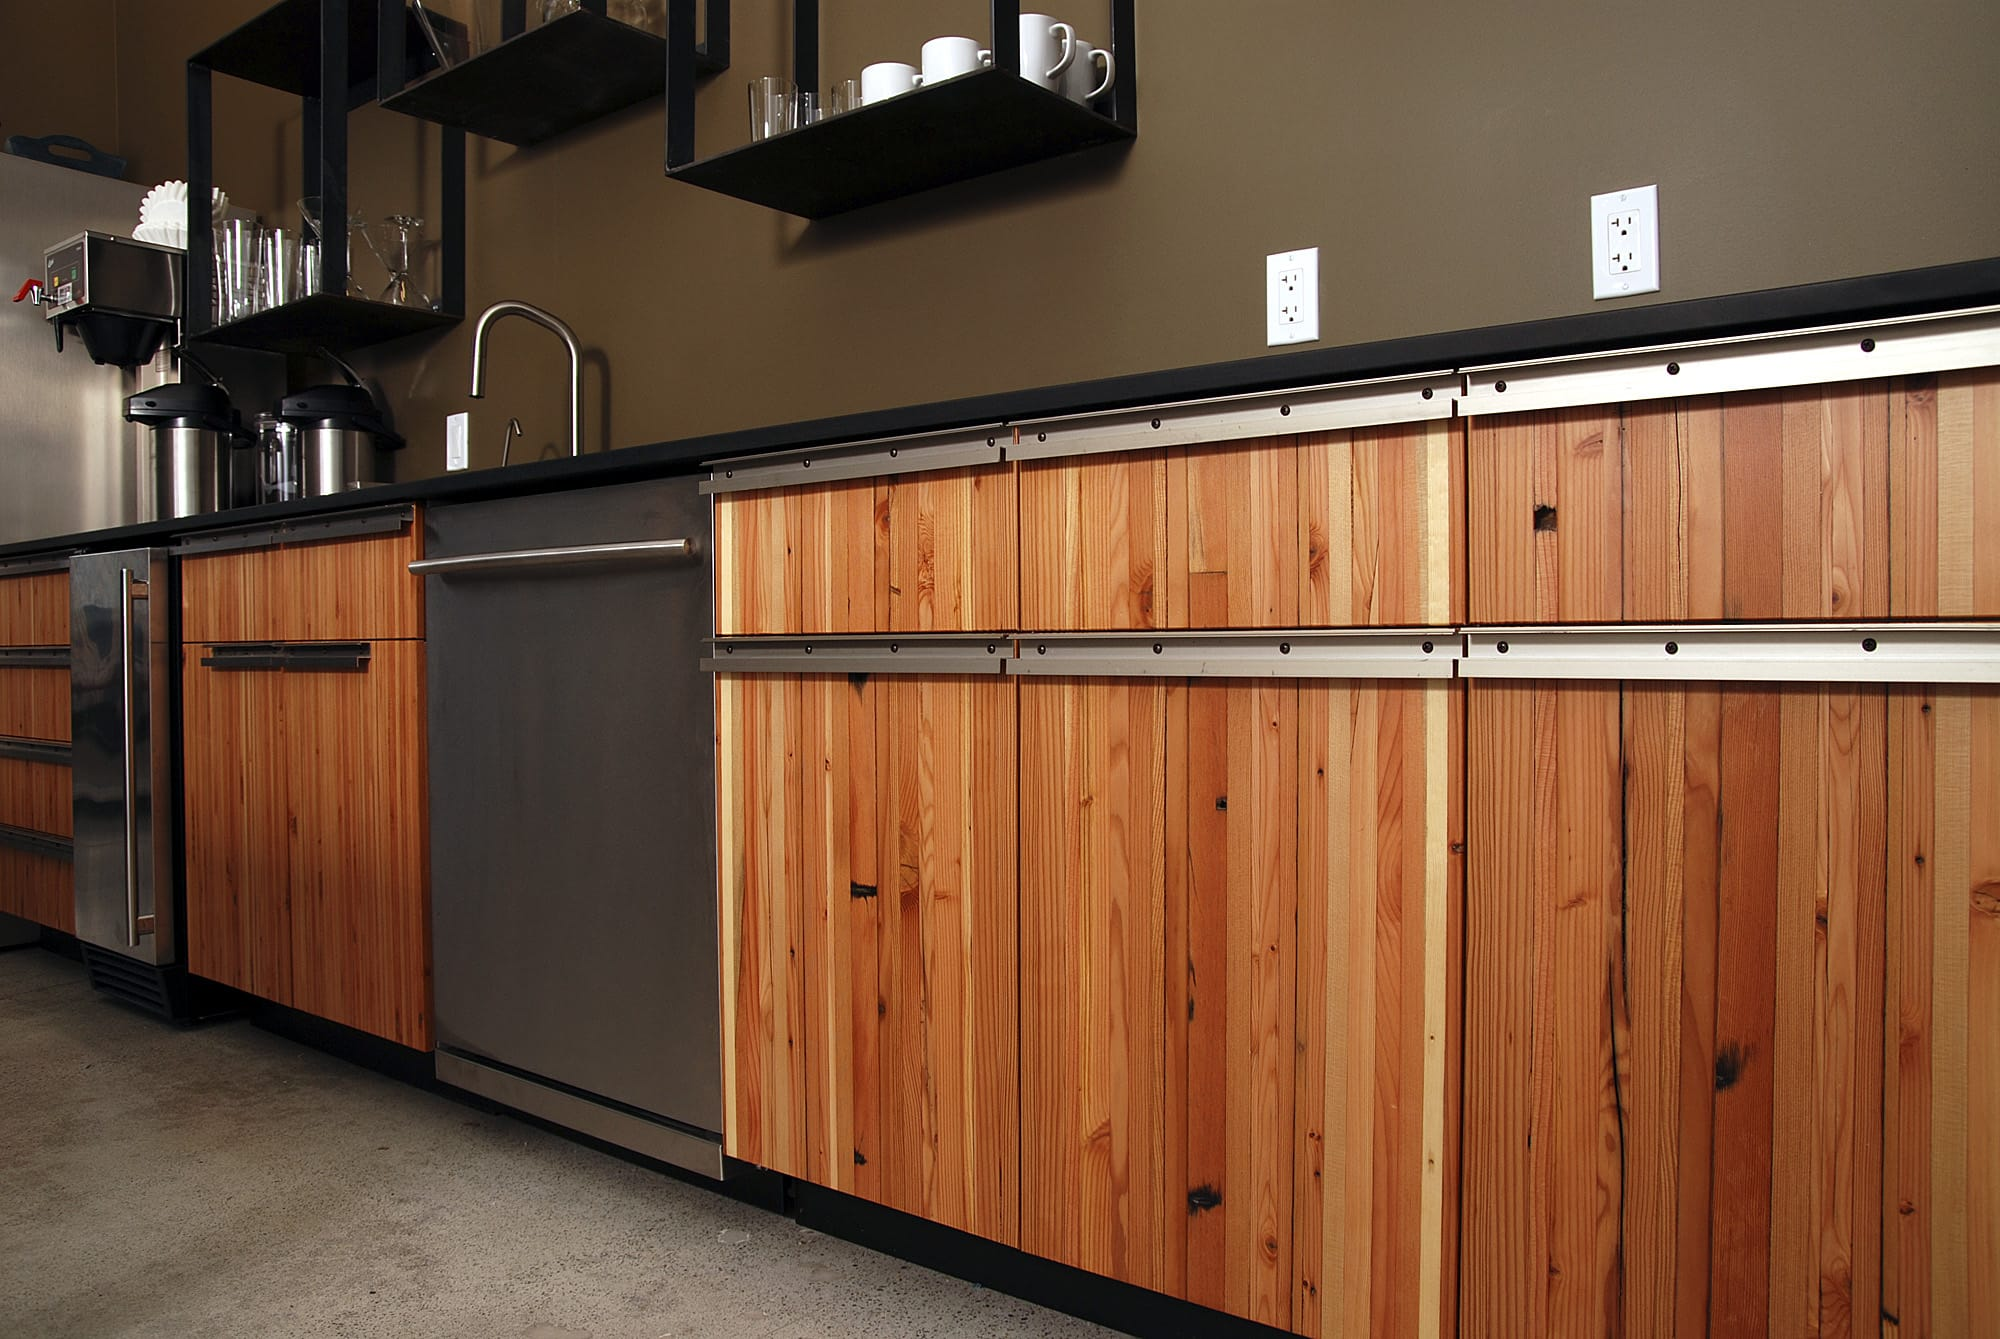 Reclaimed Wood Kitchen Cabinets A World Of Walls Part Iv Natural Interiors